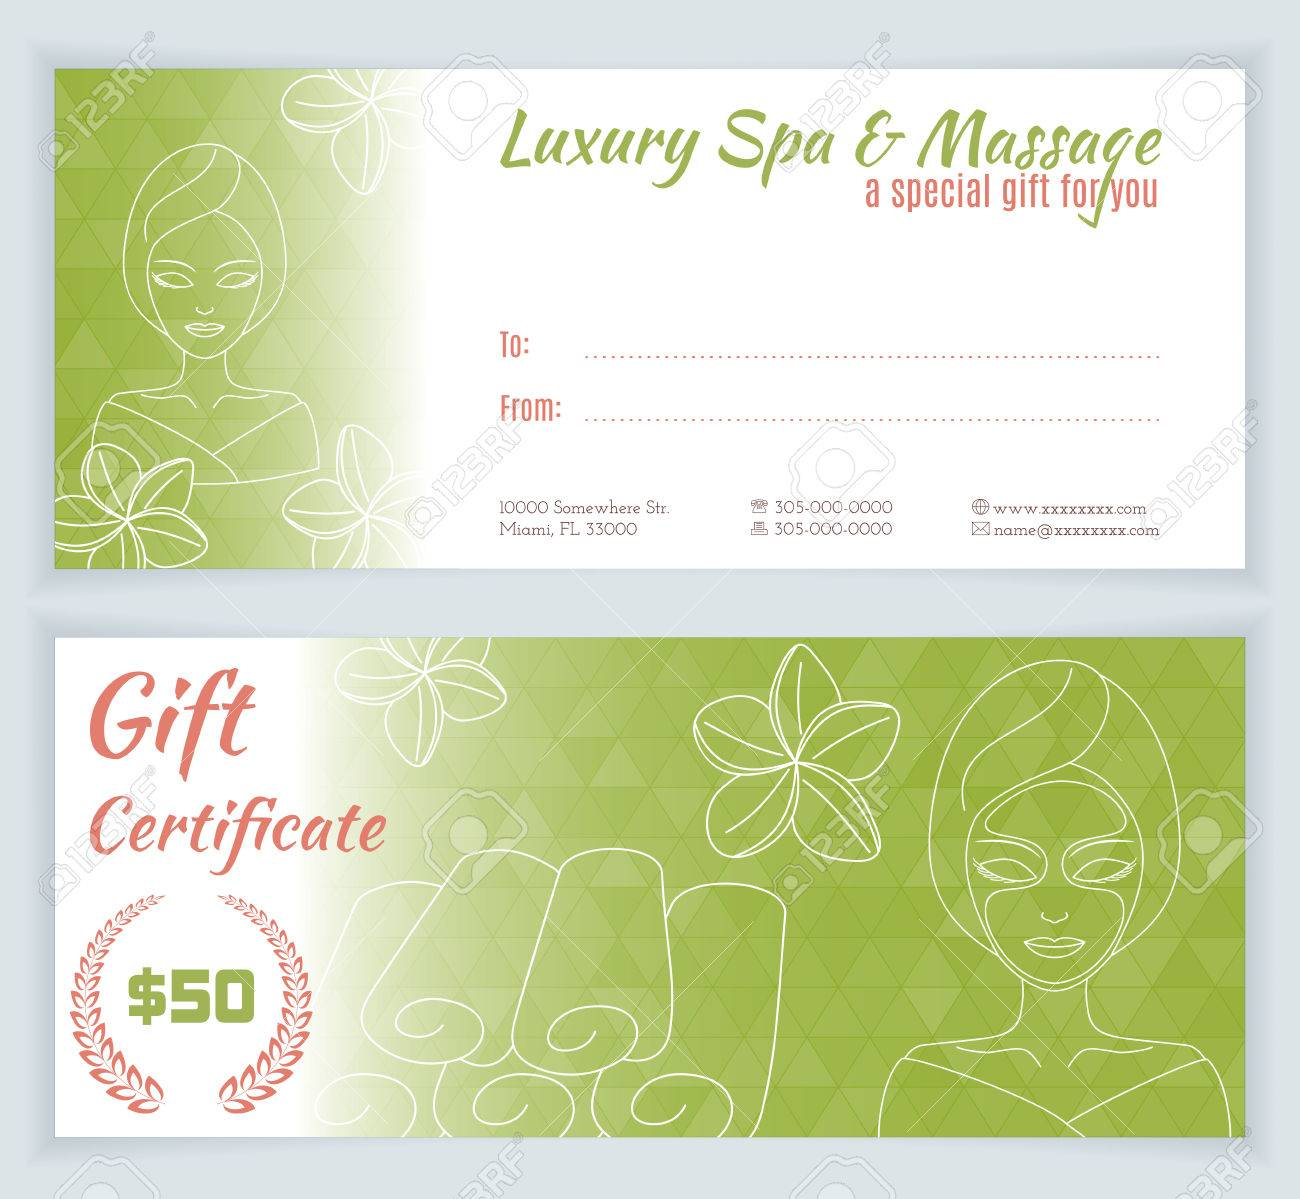 spa massage gift certificate template with hand drawn woman with mask stock vector